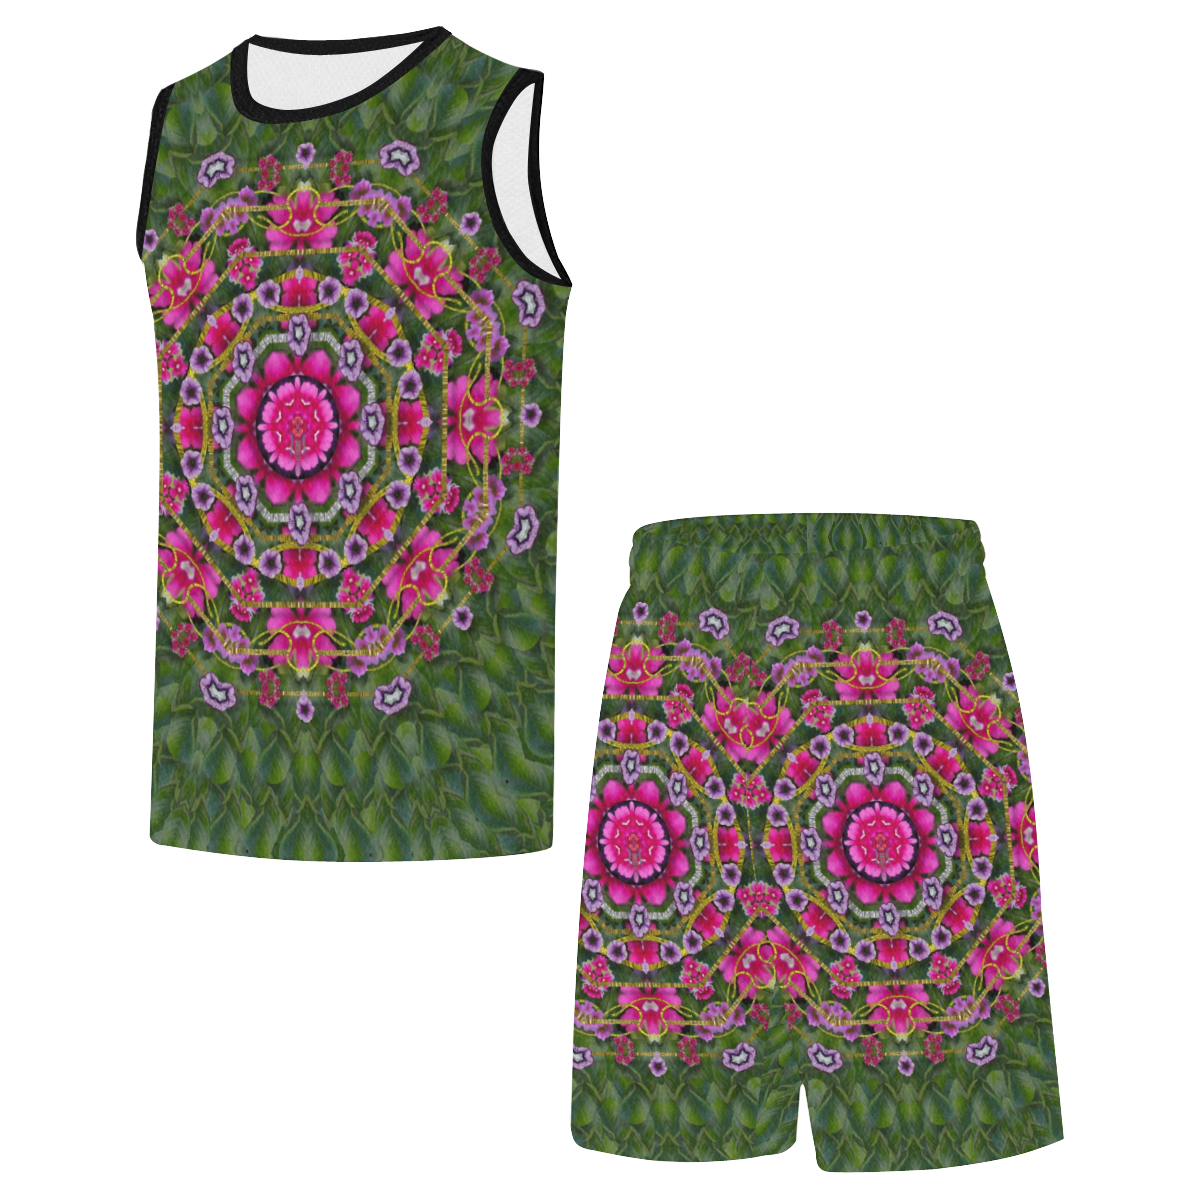 fantasy floral wreath in the green summer  leaves All Over Print Basketball Uniform